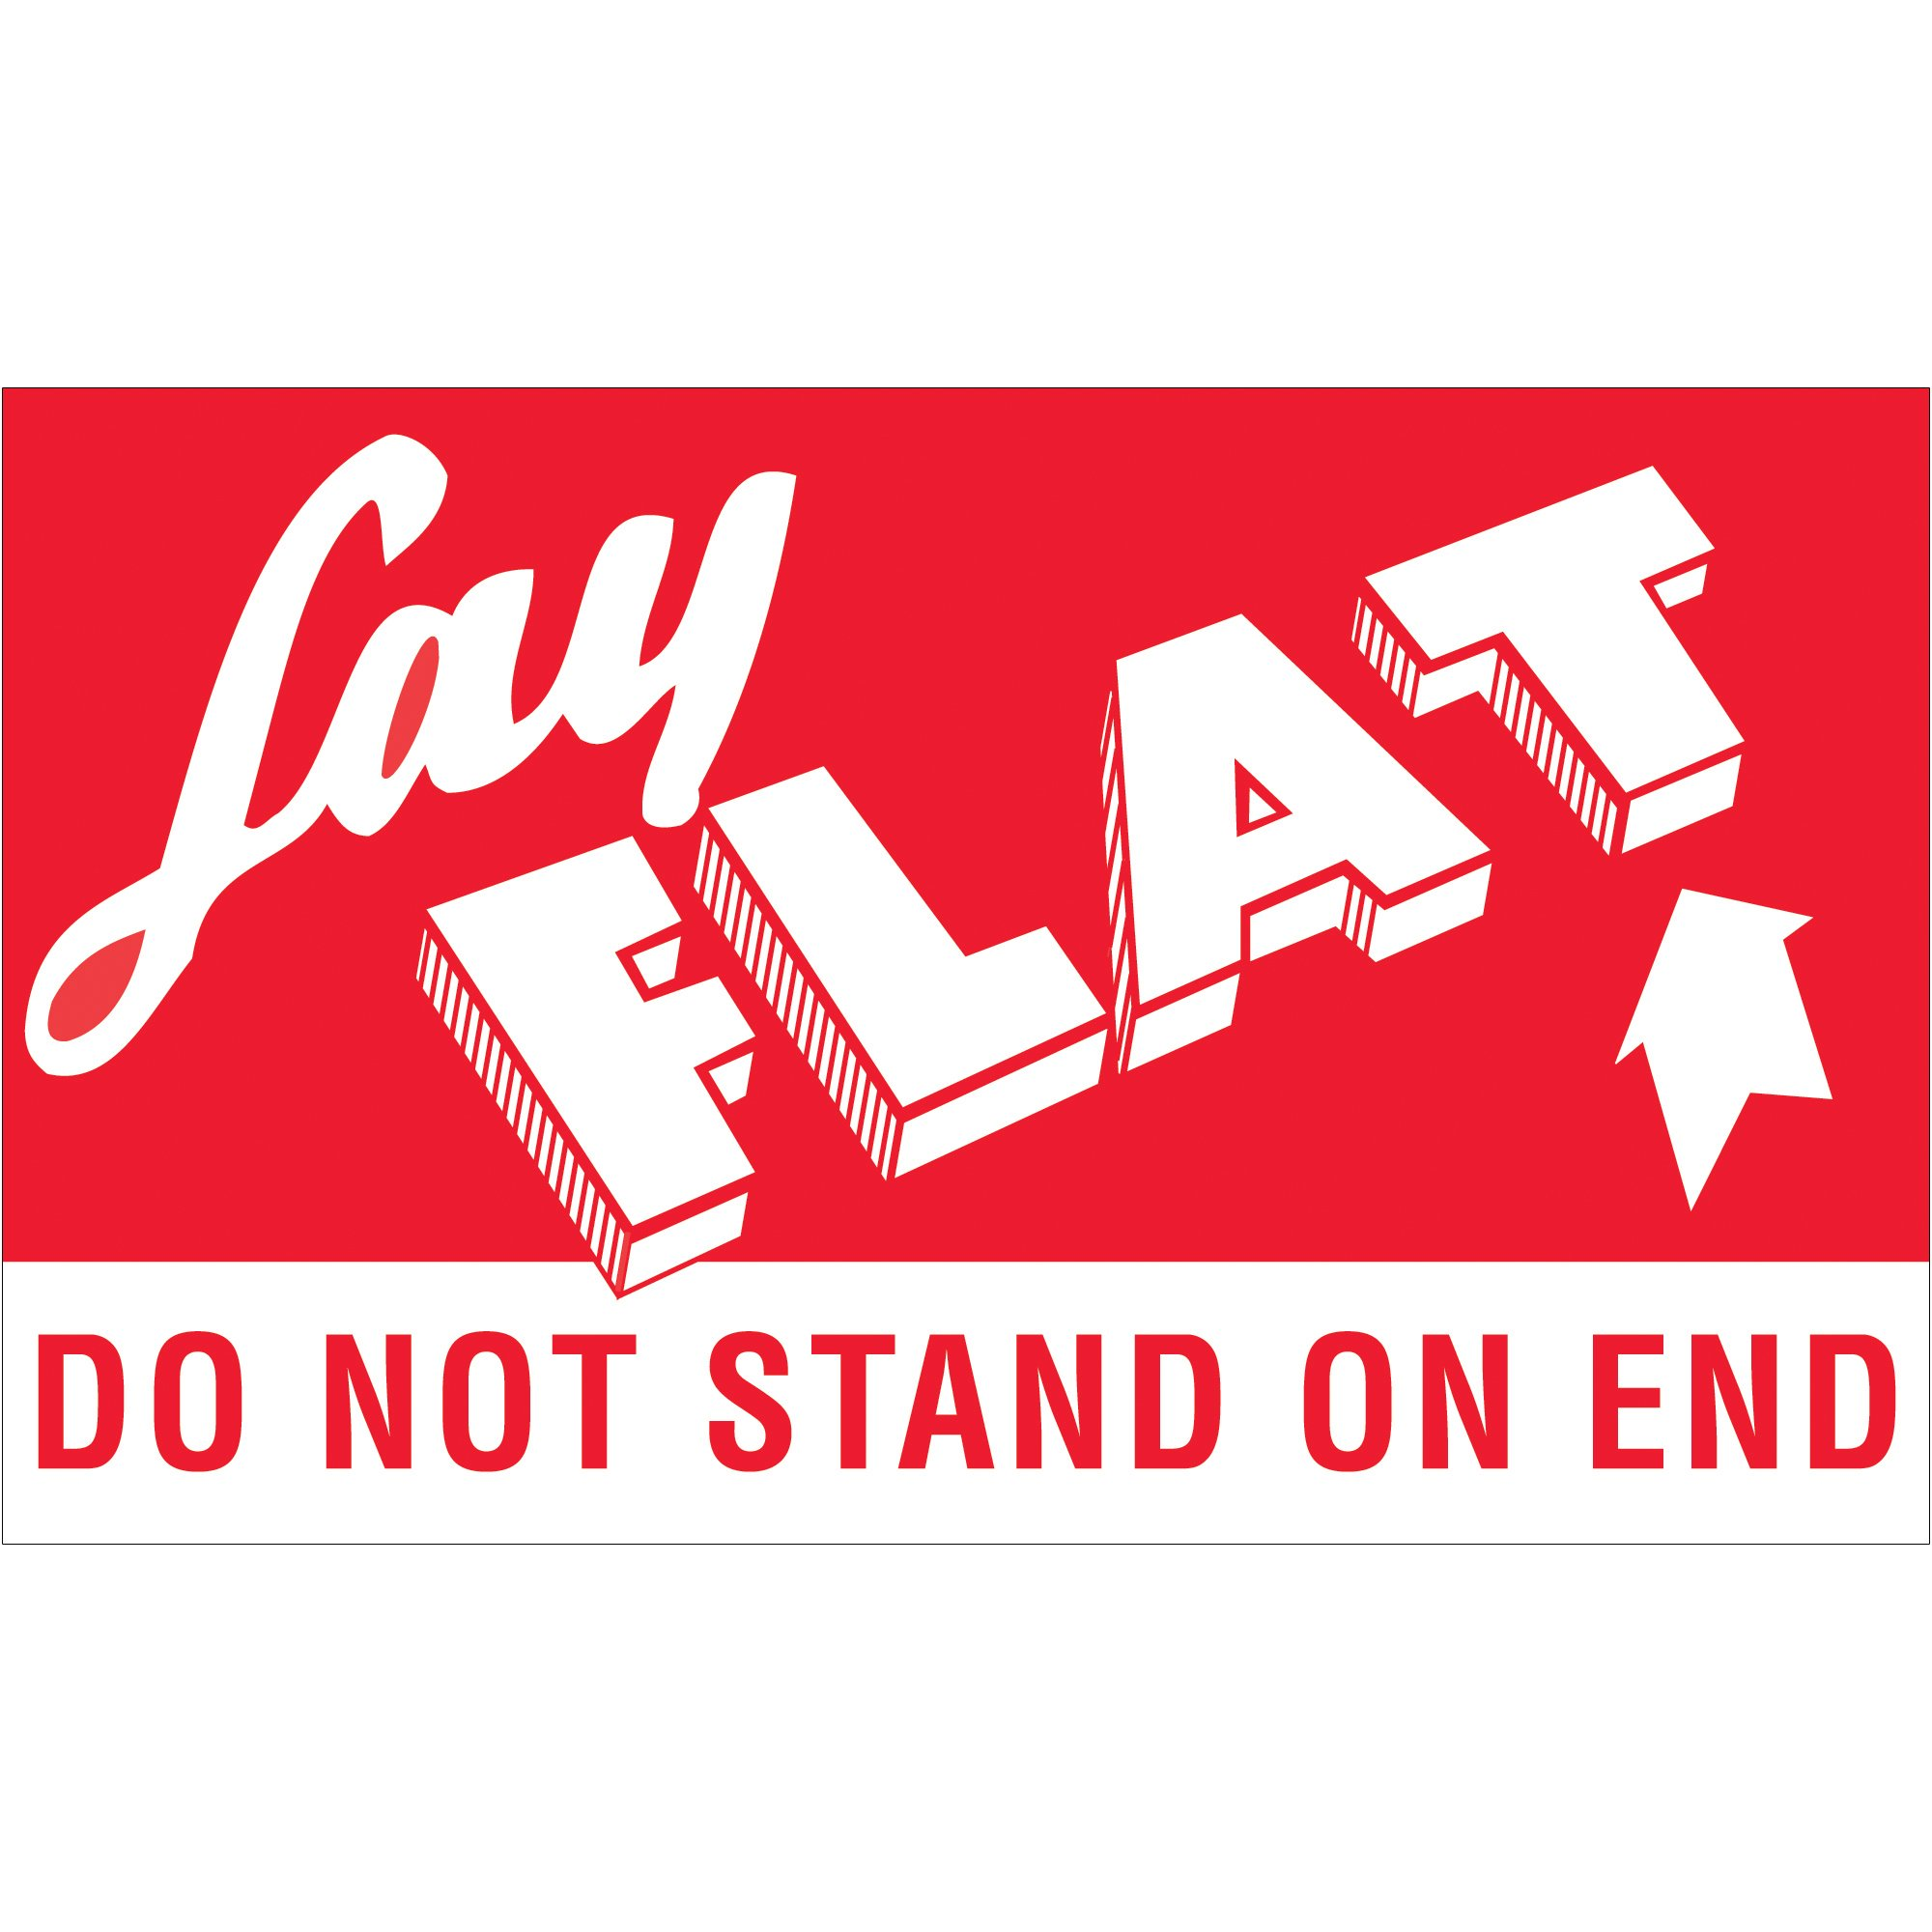 Boxes Fast Tape Logic Labels,''Lay Flat - Do Not Stand On End'', 3'' x 5'', Red/White, (1 Roll of 500 Labels) by Boxes Fast